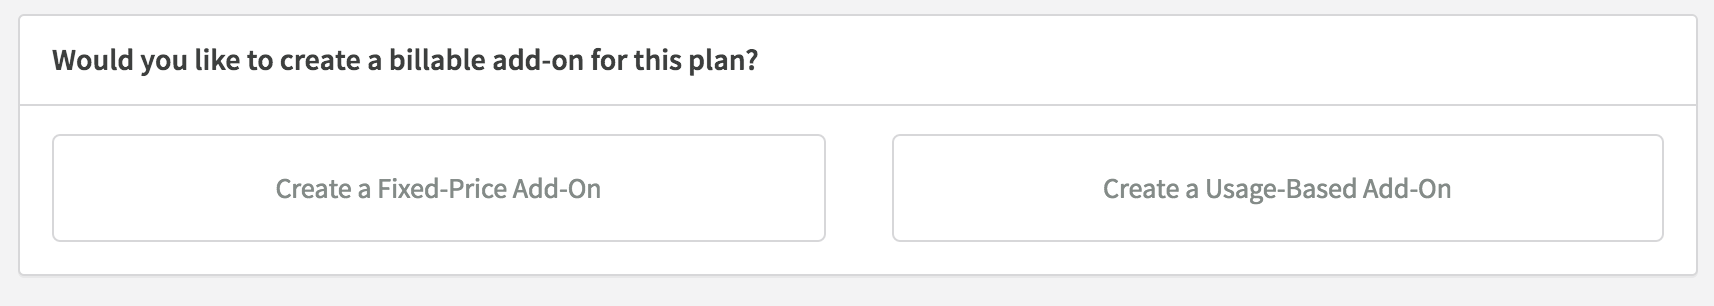 New Plan Page - Add-On Choices